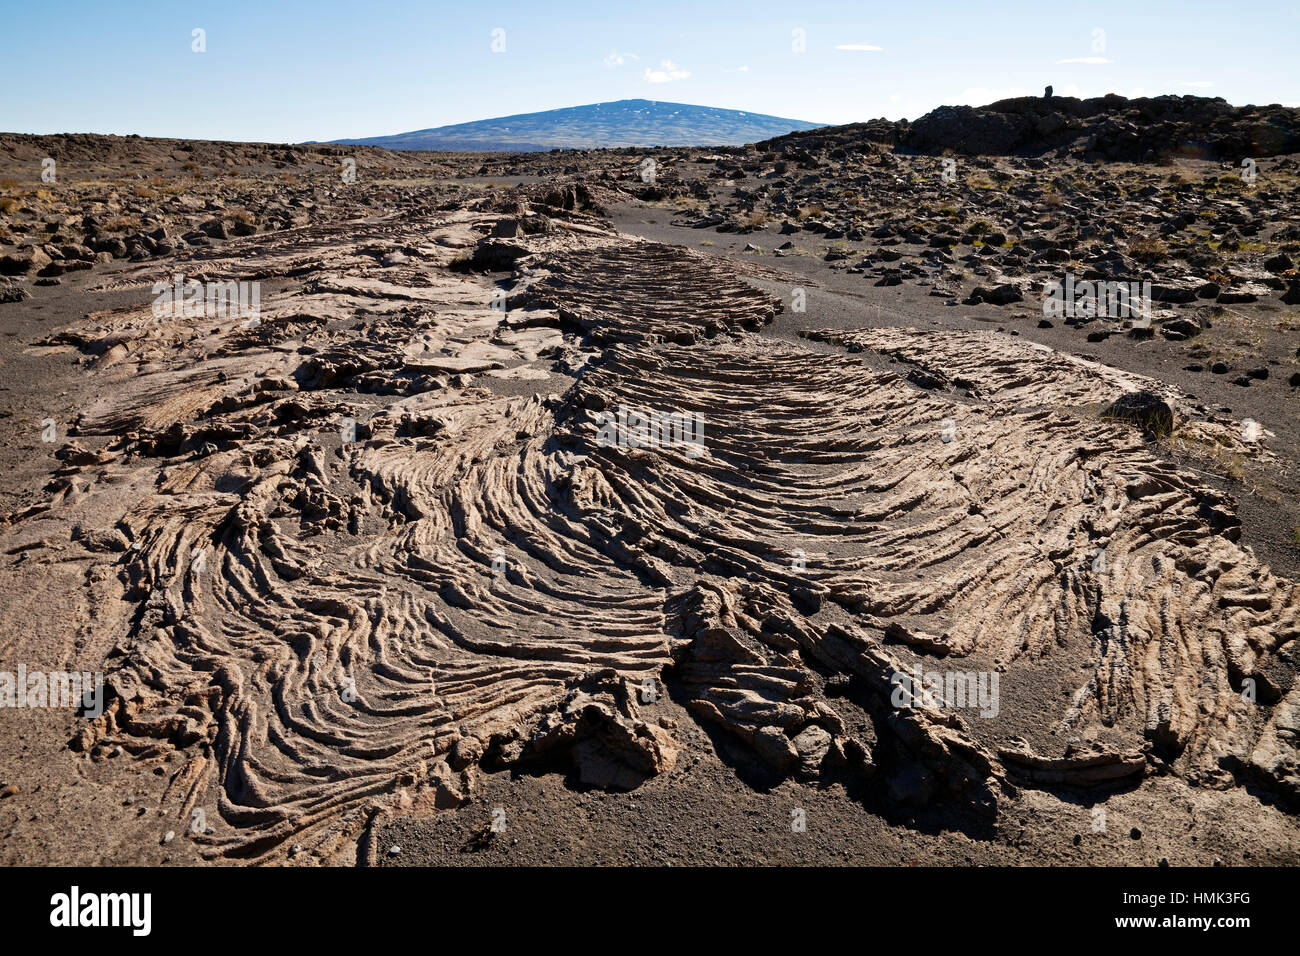 Solidified ropy lava, shield volcano Skjaldbreiður at back, Iceland - Stock Image